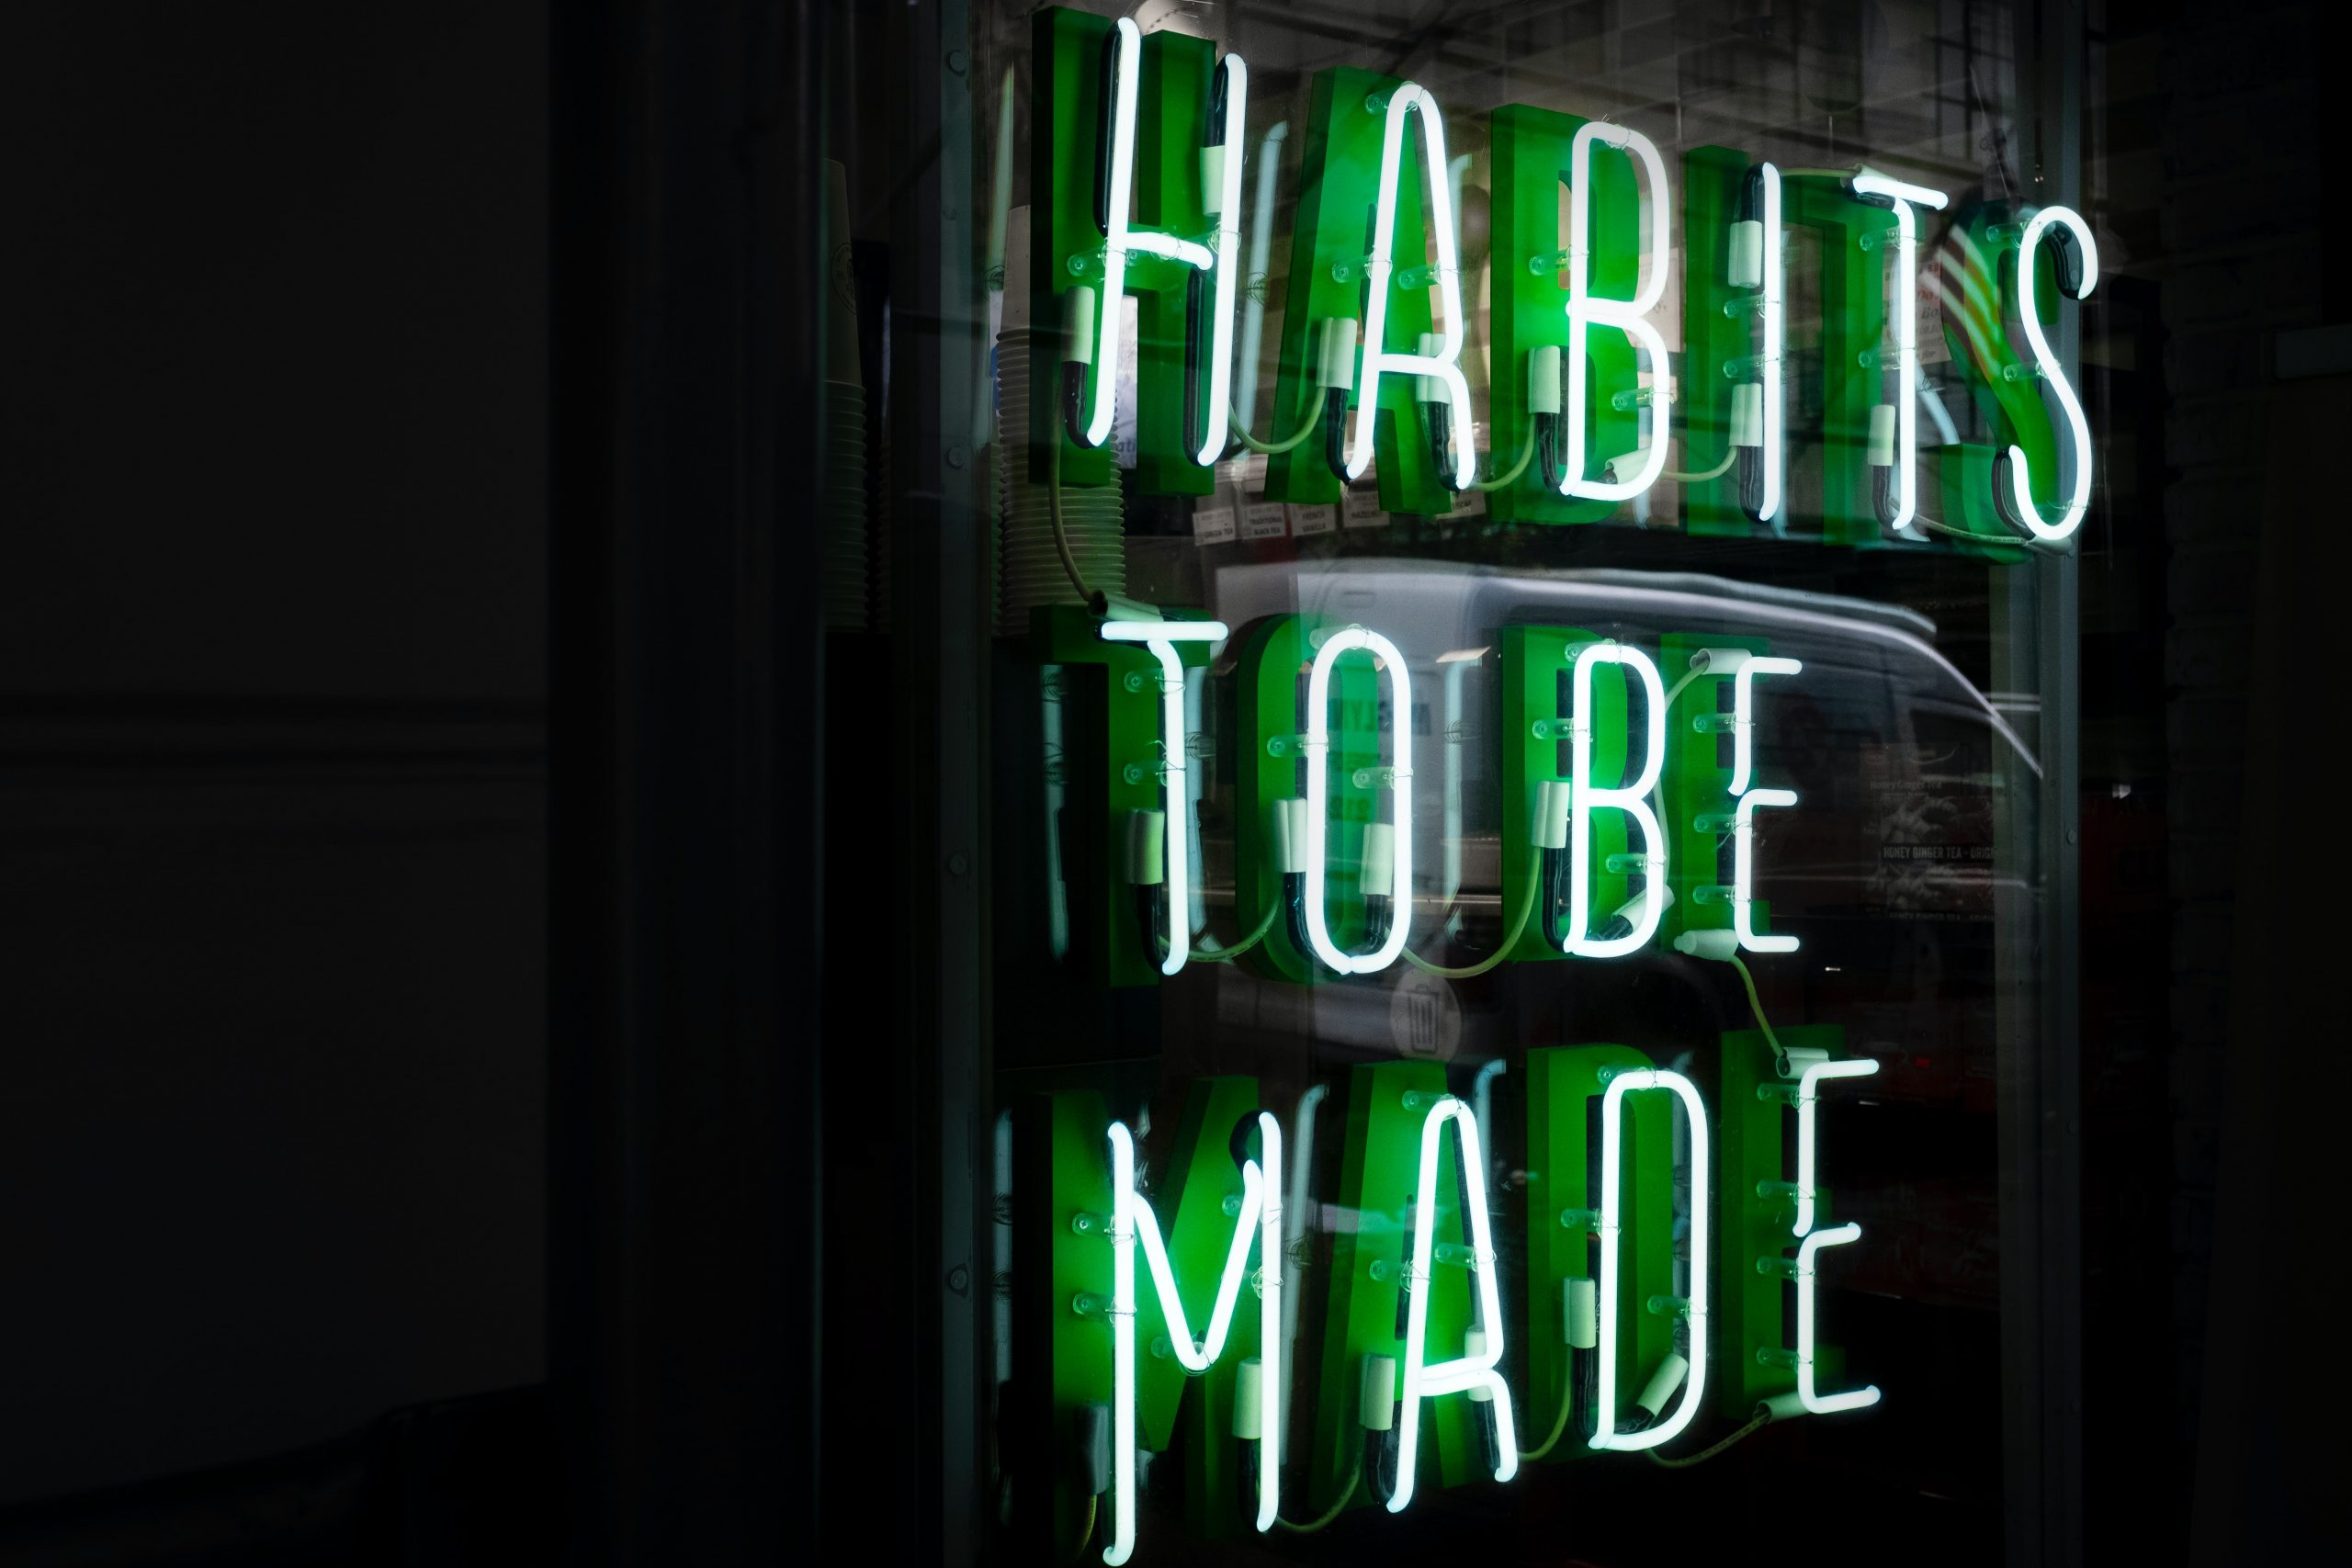 Habits to Be Made Neon Sign